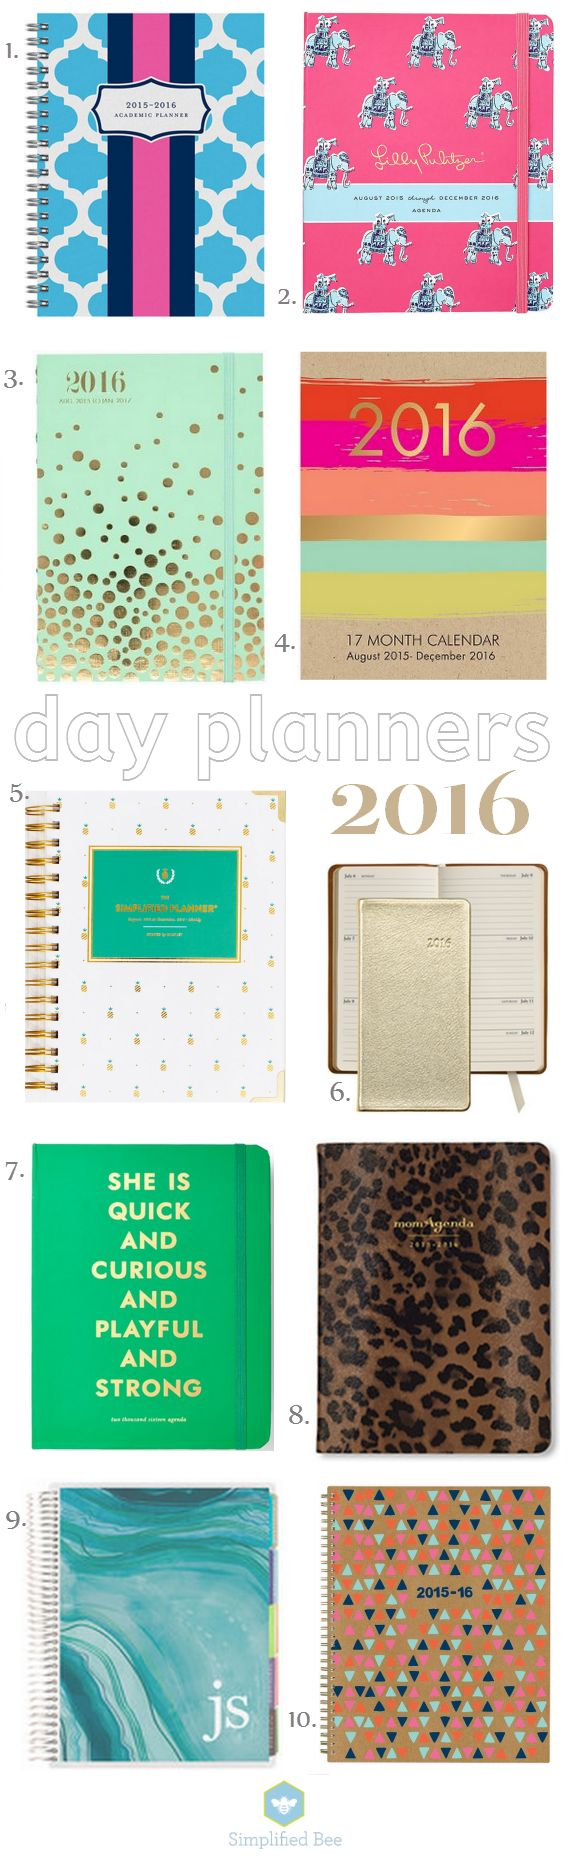 Top 10 :: Stylish Daily Planners 2016 | Simplified Bee | Bloglovin'